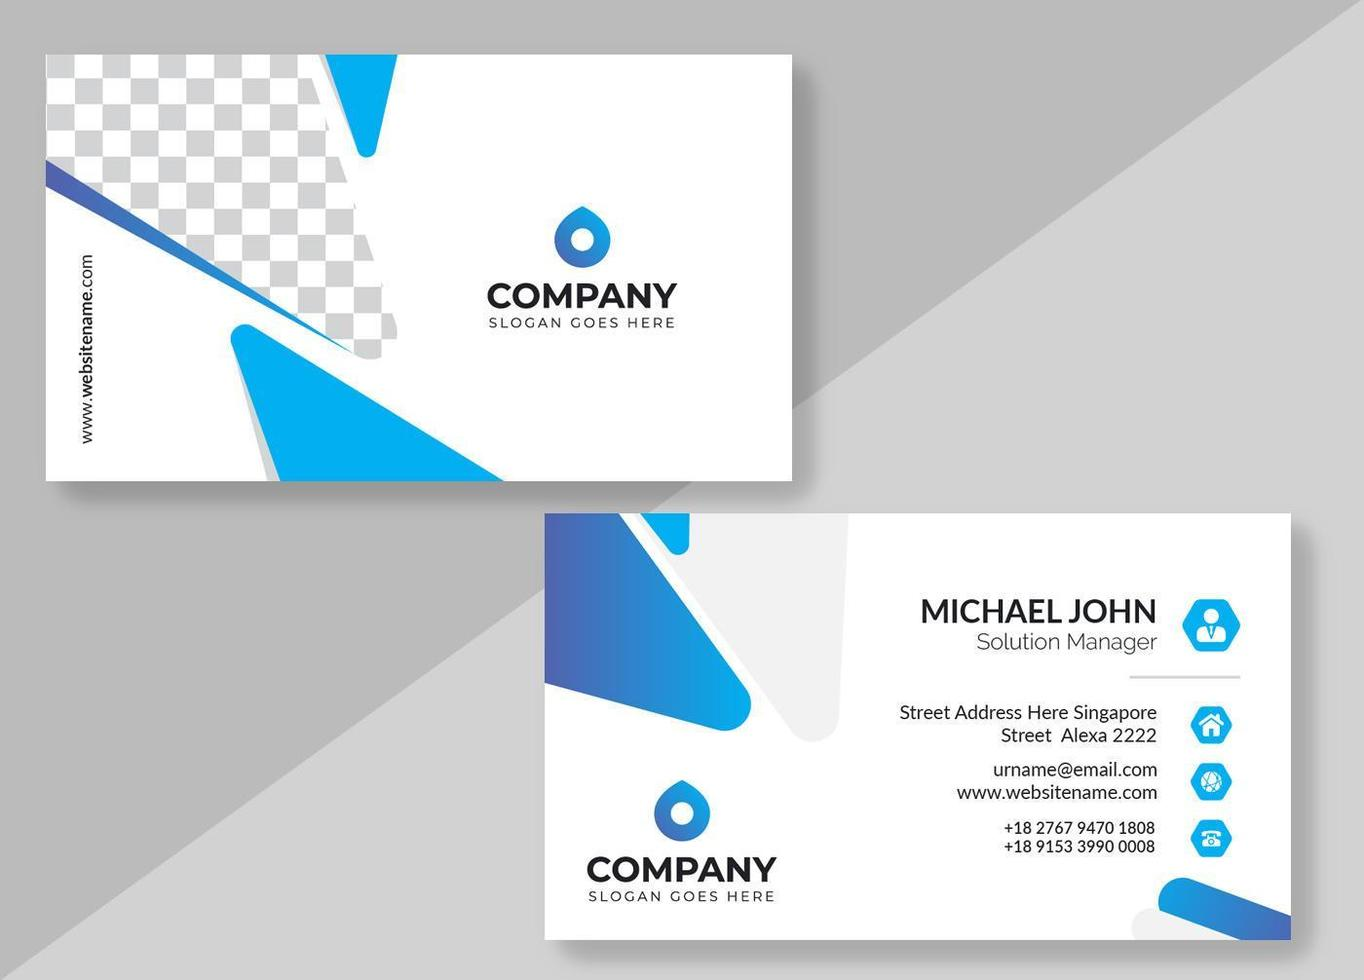 White and Blue Rounded Triangle Business Card vector